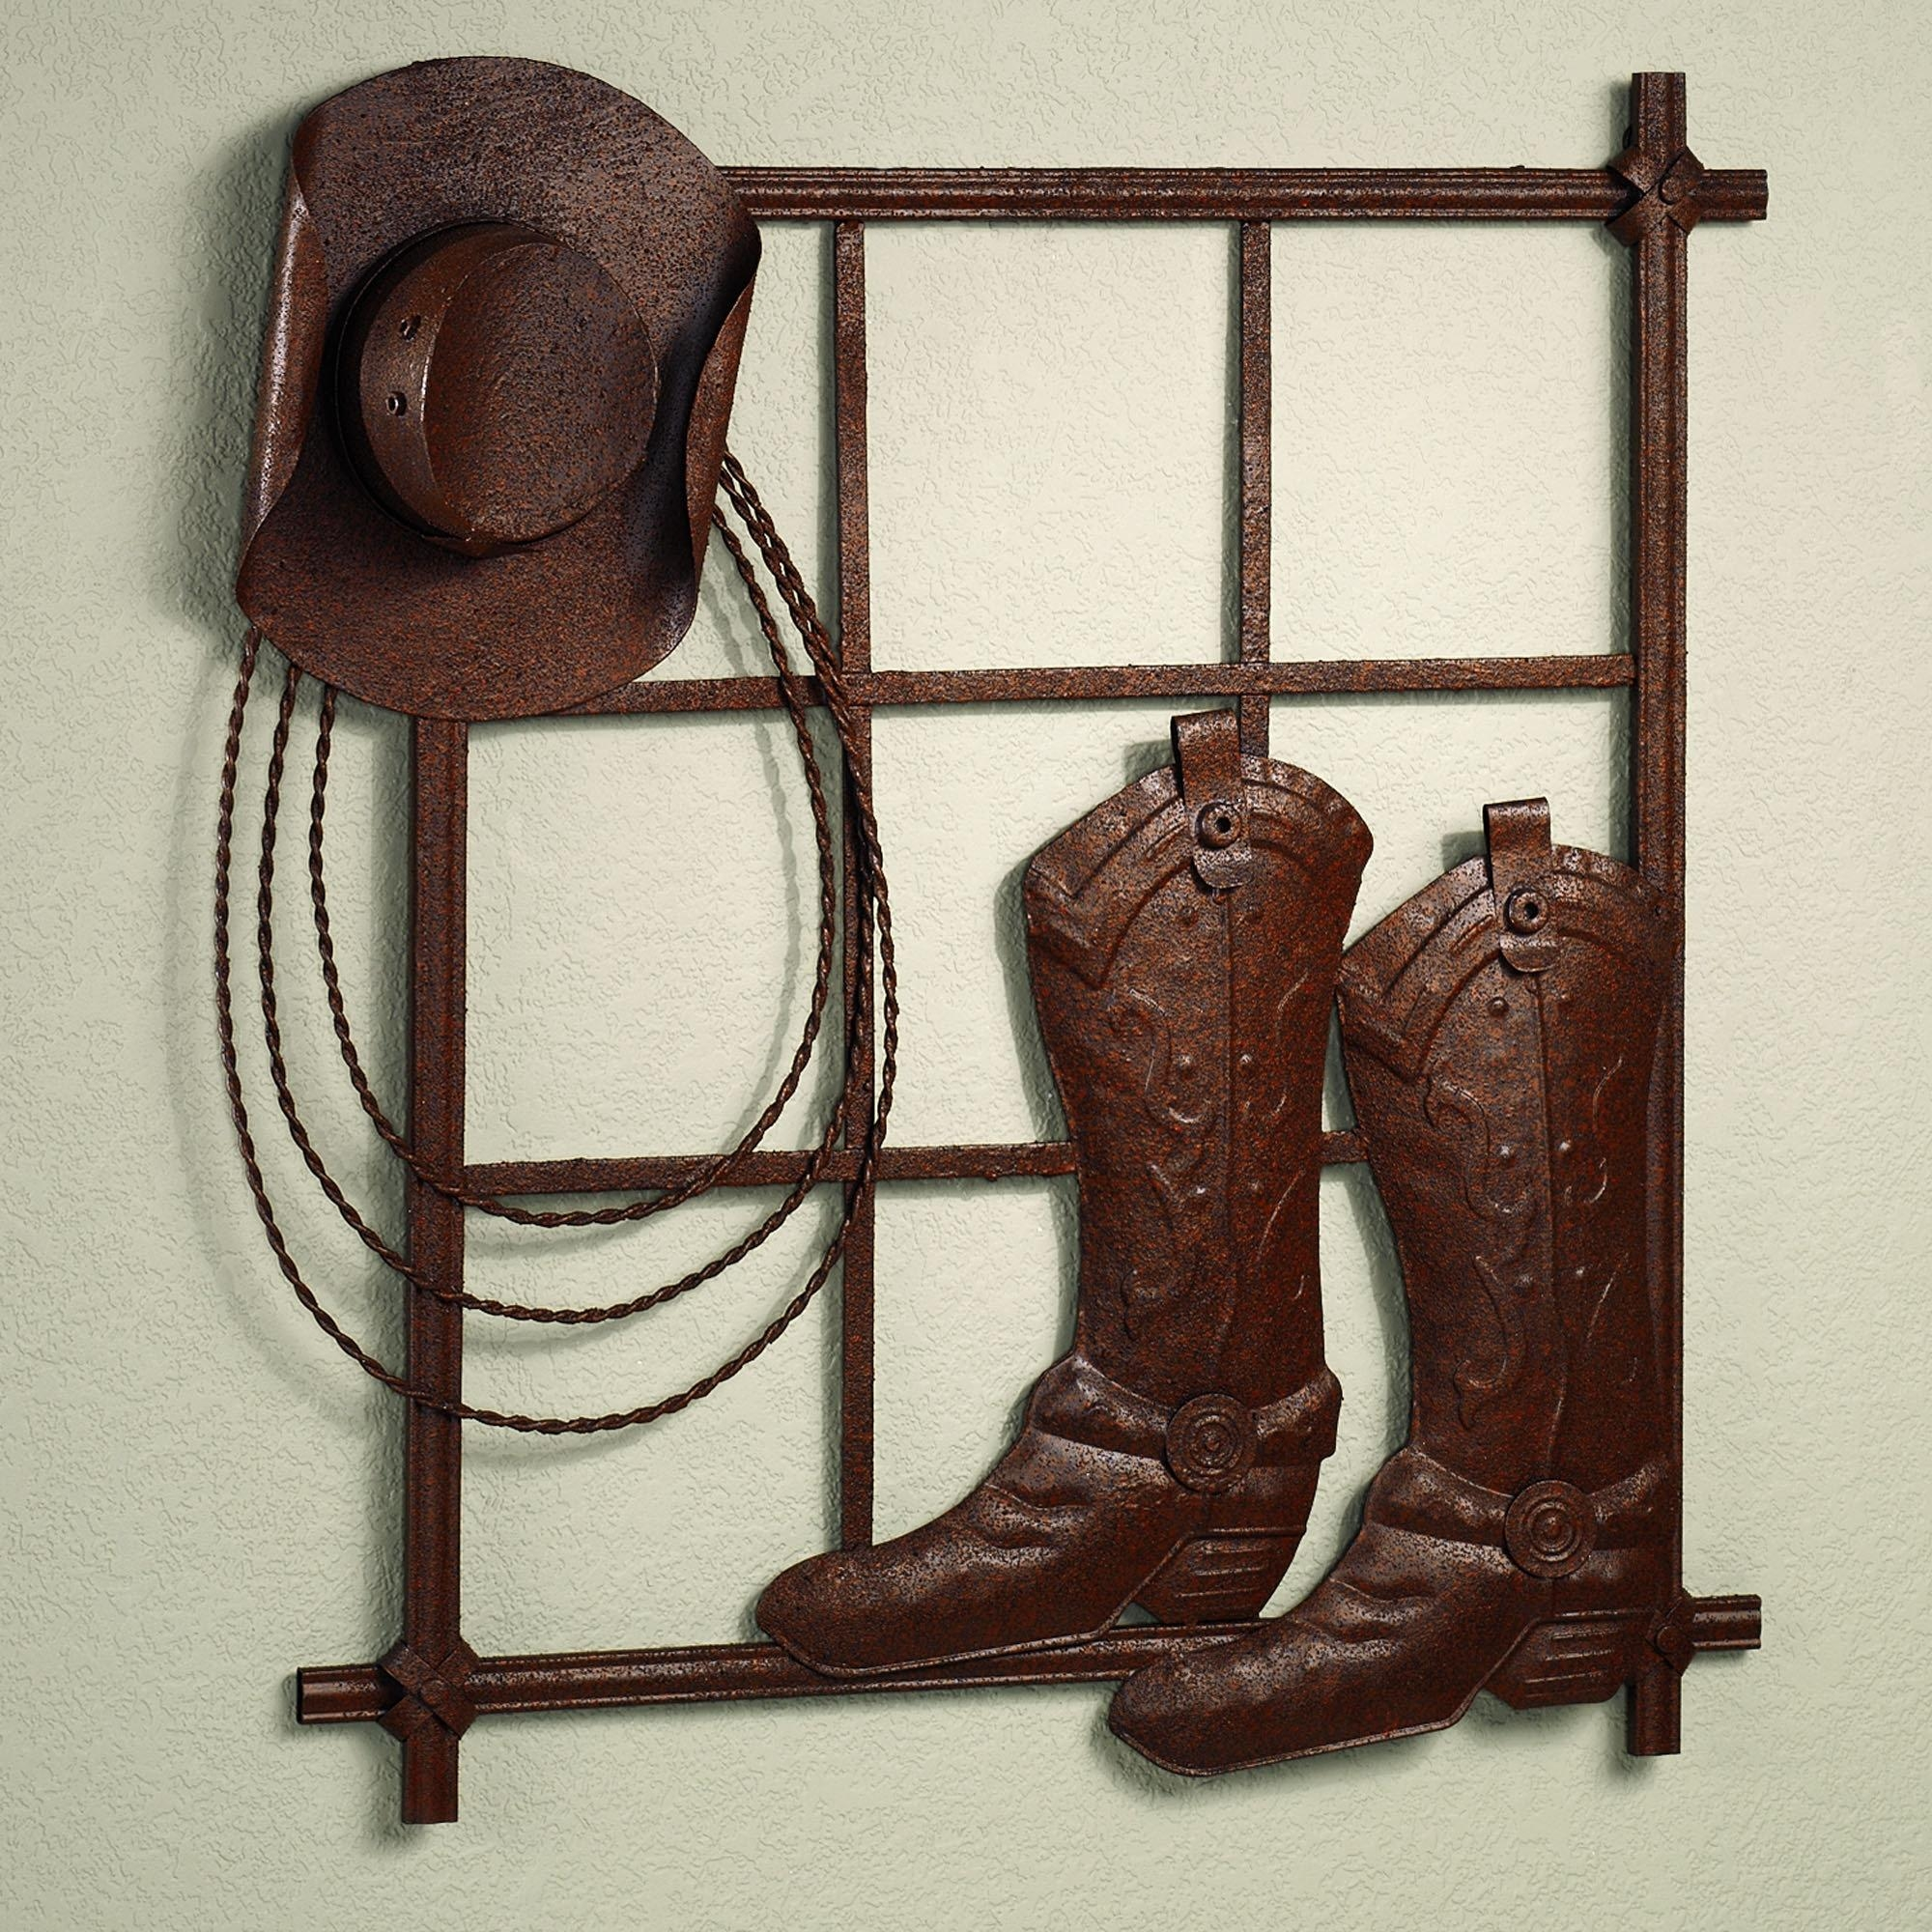 Home Design : Rustic Wood And Metal Wall Art Contemporary Compact With Wood And Iron Wall Art (Image 8 of 20)